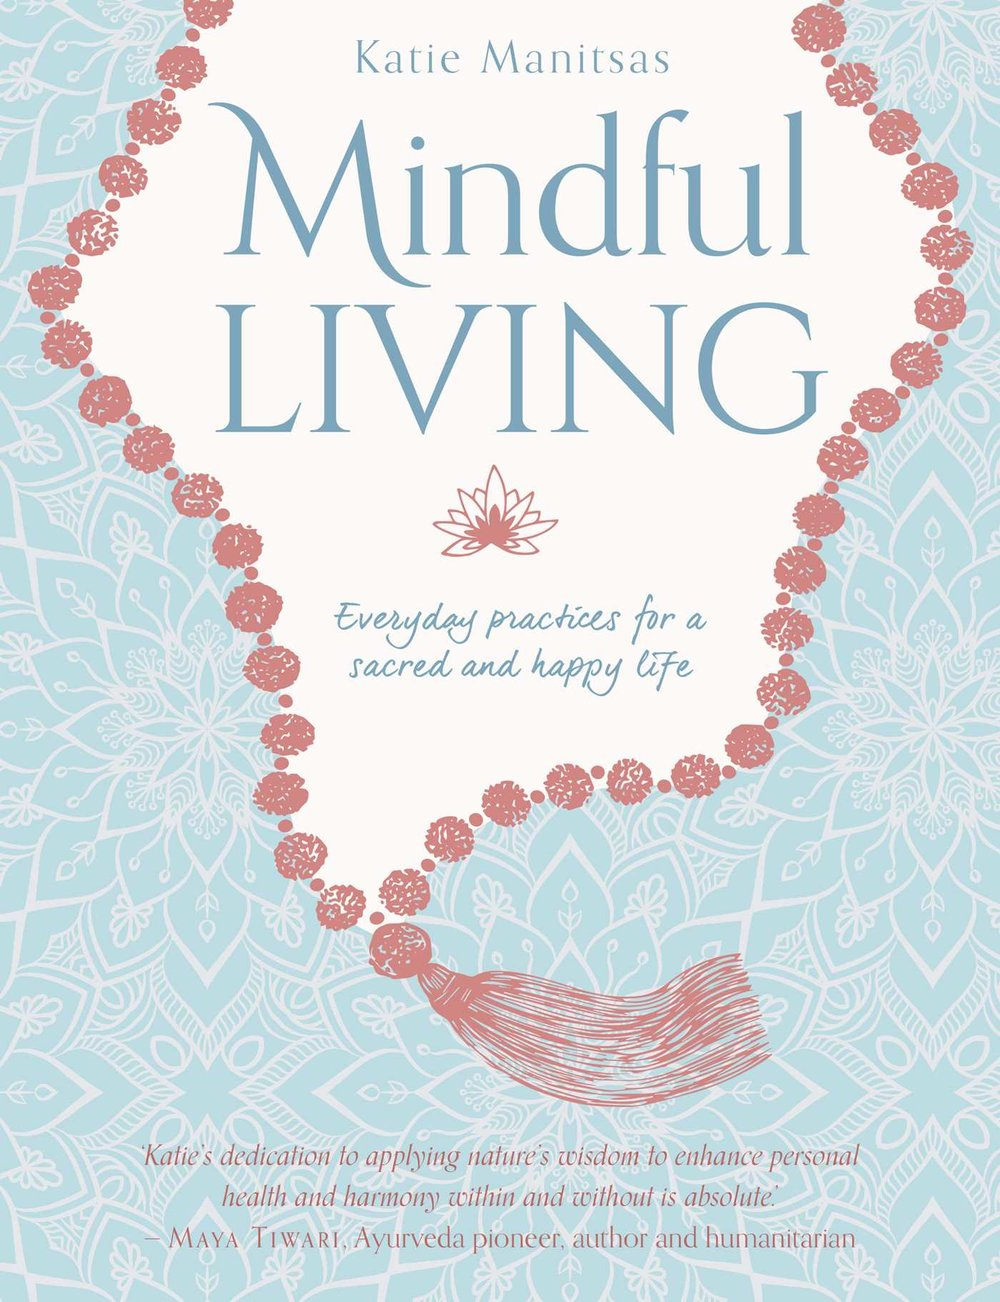 MIndful Living book cover.jpg